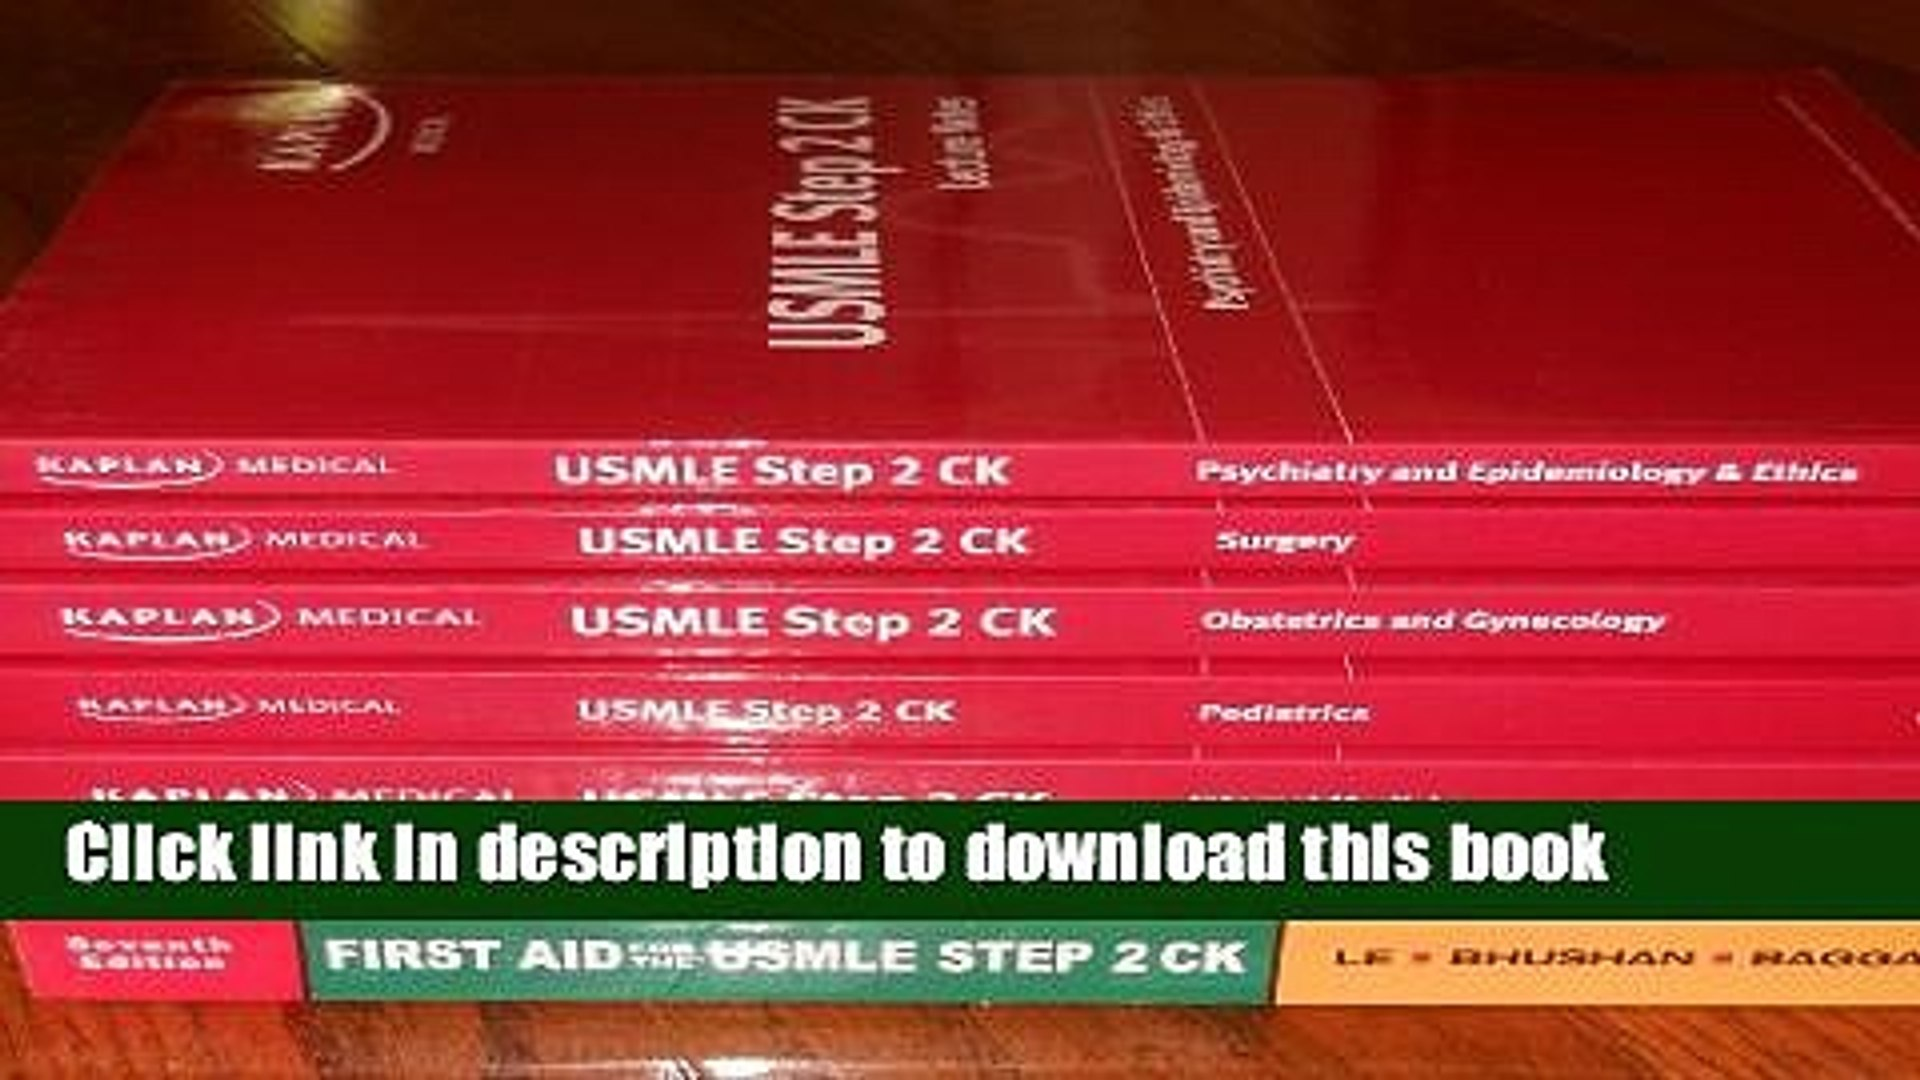 Read Kaplan Usmle Step 2 Ck Lecture Notes - 5 Books 2008 Edition, First Aid  For the USMLE, Step-Up